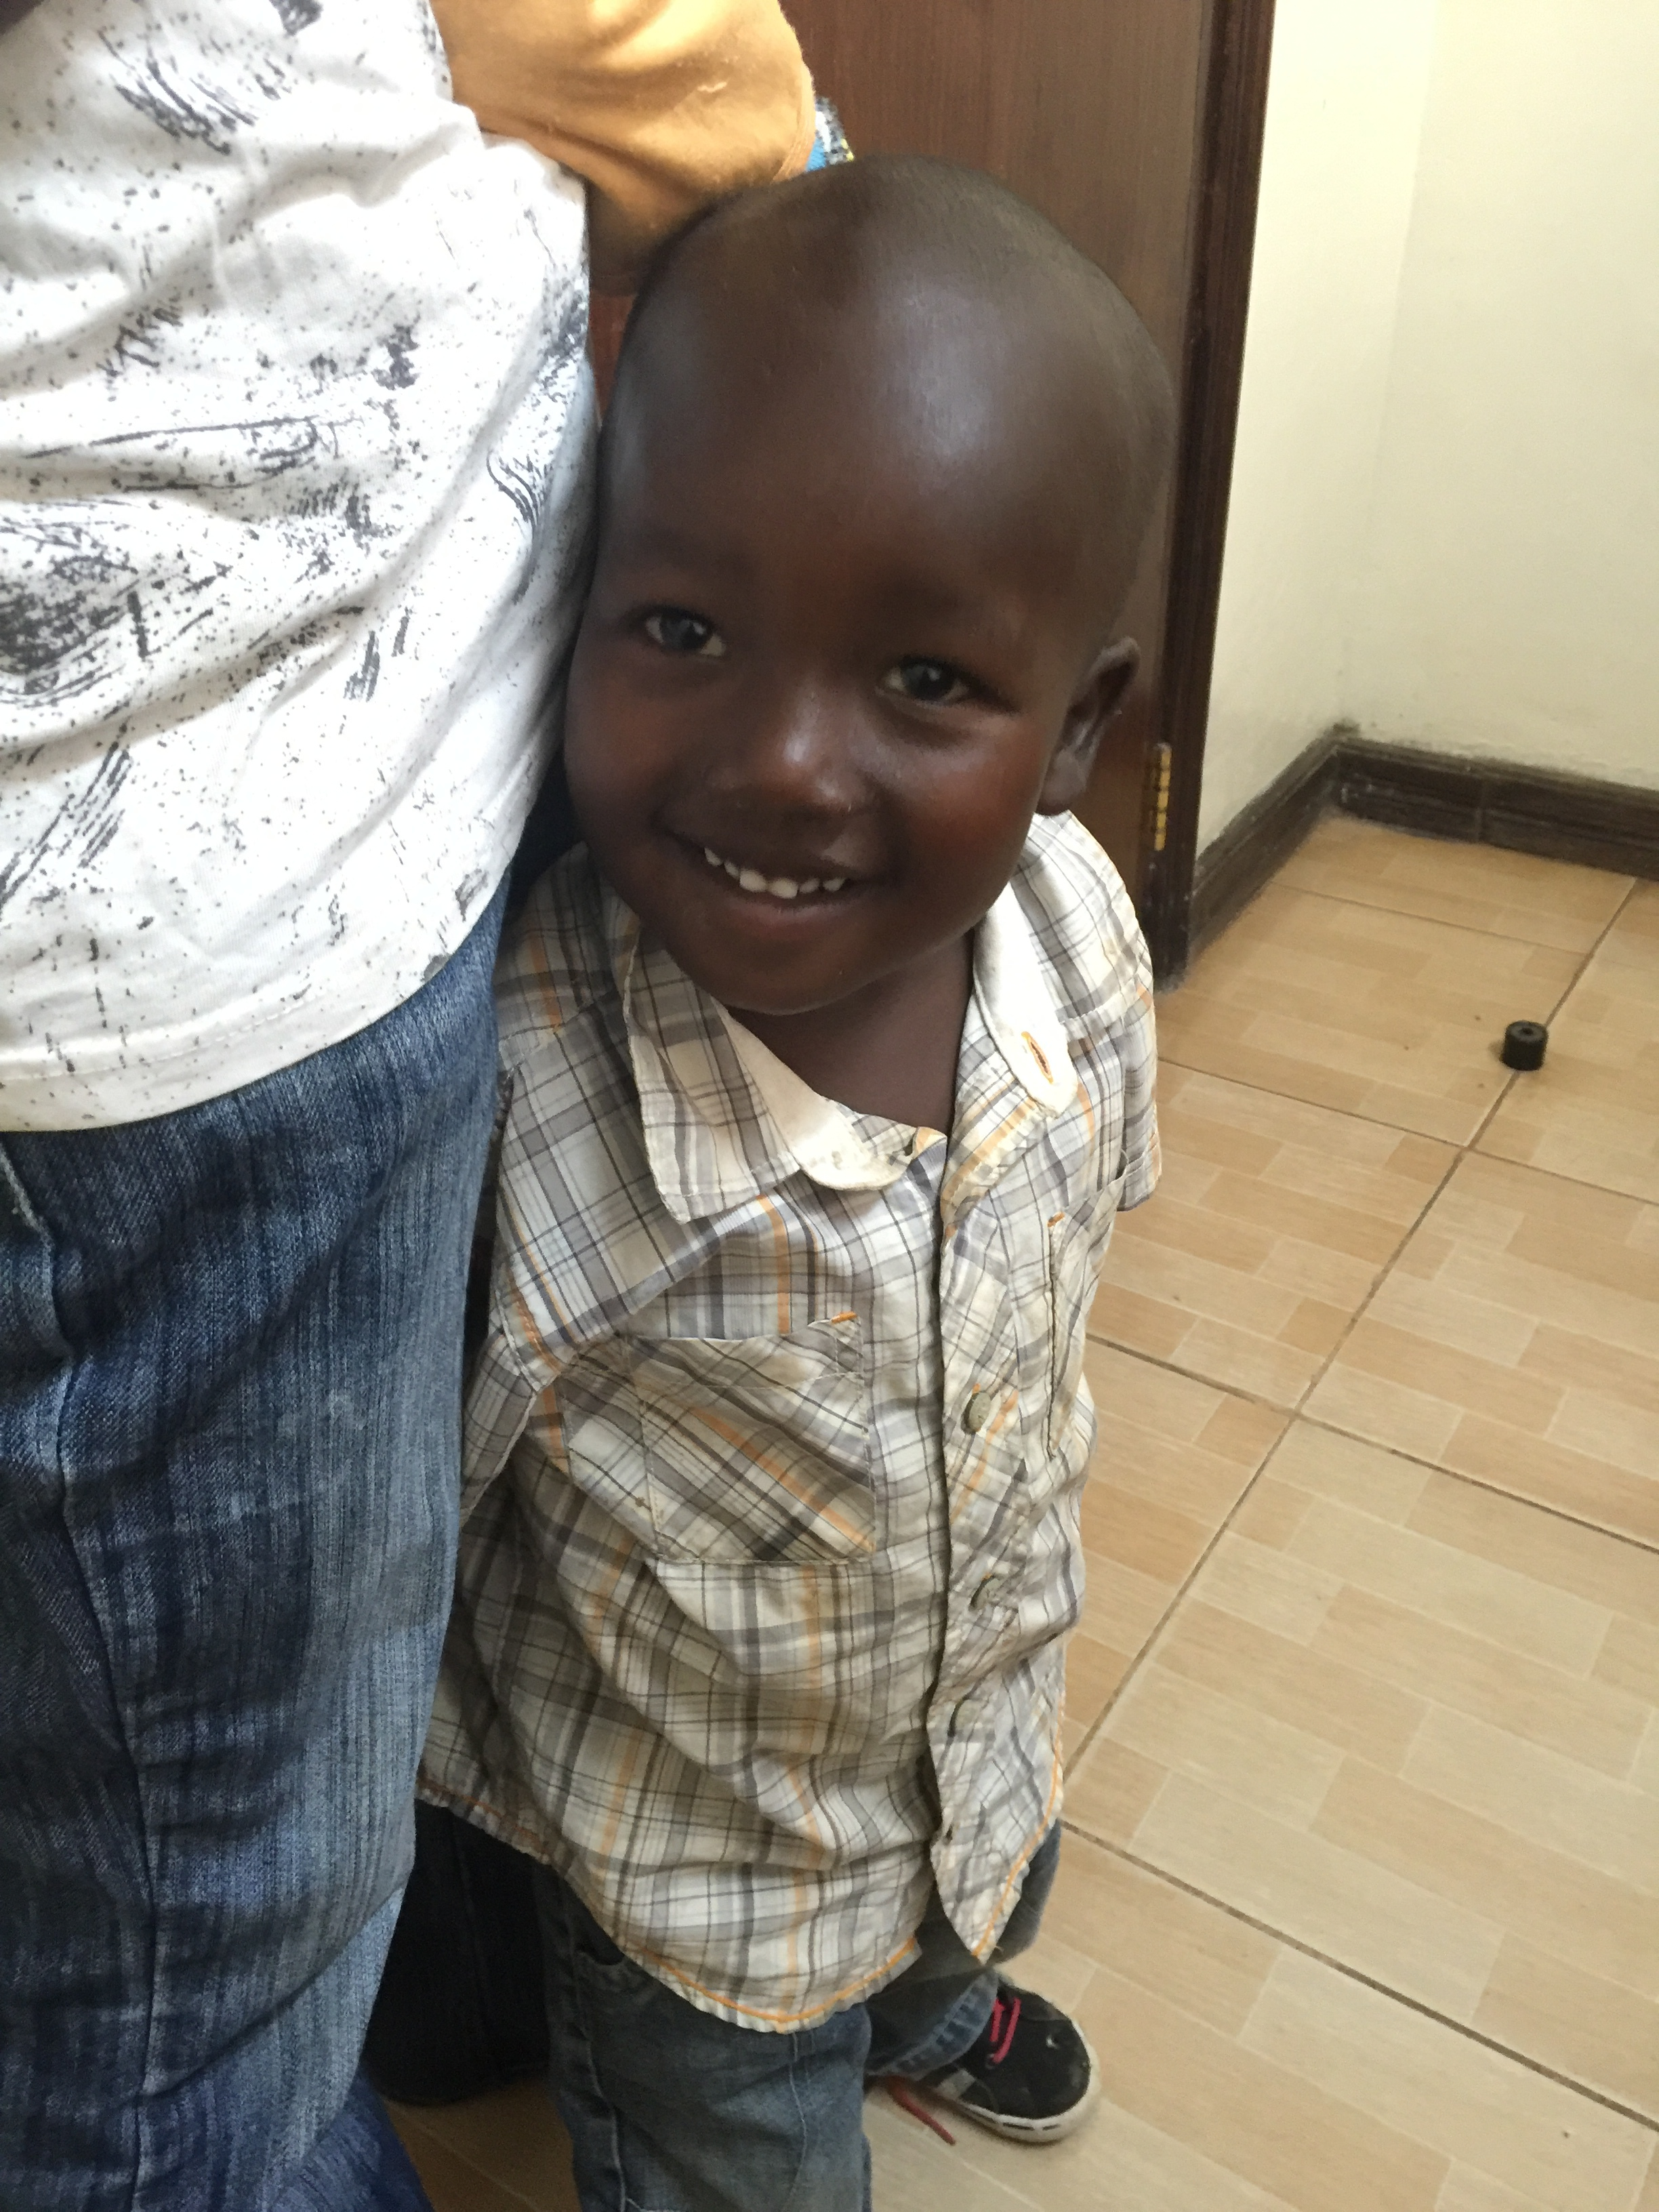 A young patient smiling after care. Another family including a mother and her infant were treated for dehydration.